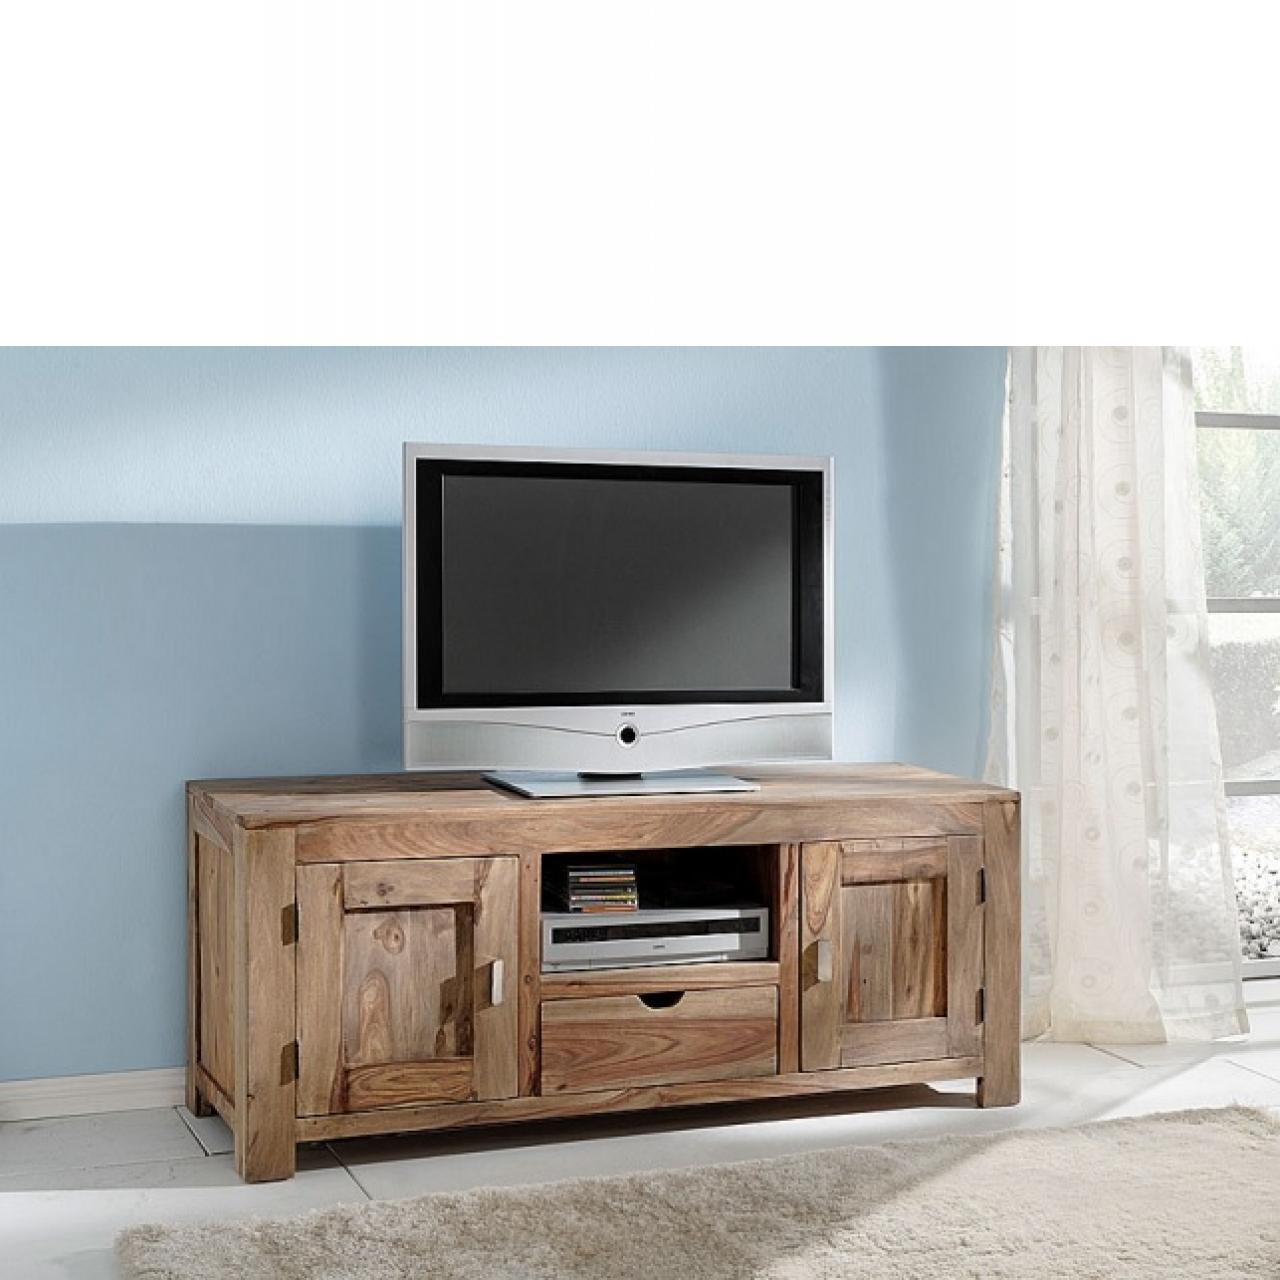 tv lowboard yoga 6539 beim bel wohnen m bel. Black Bedroom Furniture Sets. Home Design Ideas